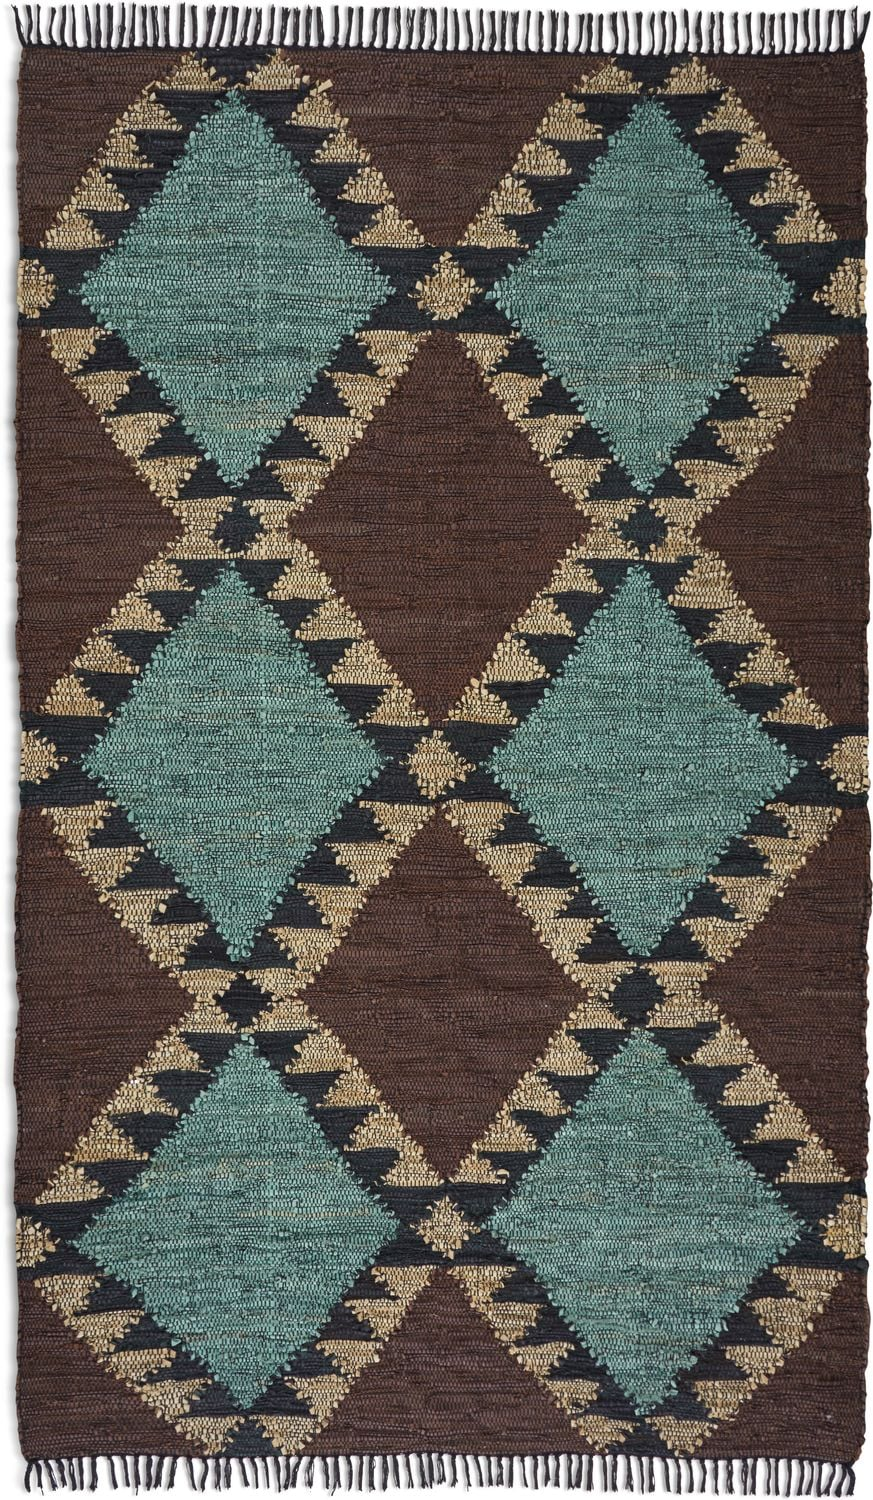 Rugs - Joplin Area Rug - Multi